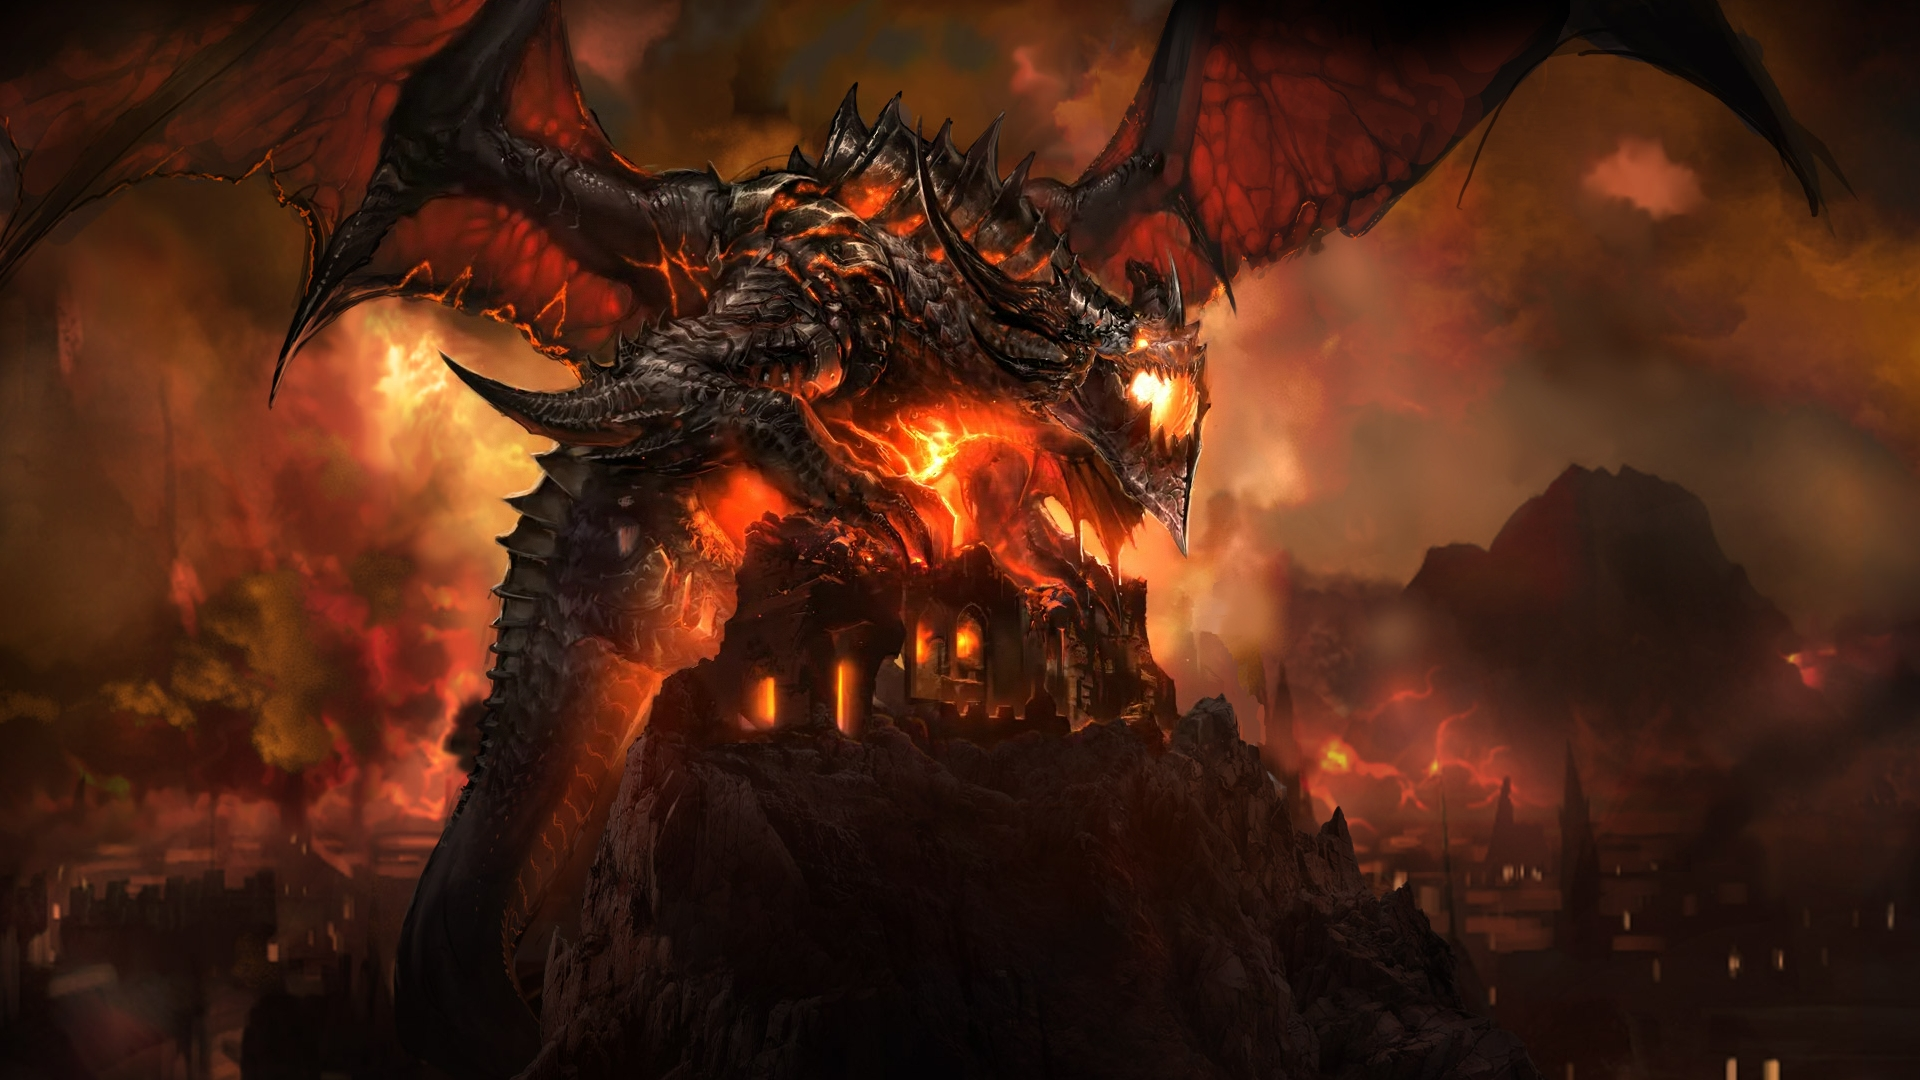 Cataclysm Deathwing World Of Warcraft Jpg The Weakened And Bloodied Red Oracle Dragon